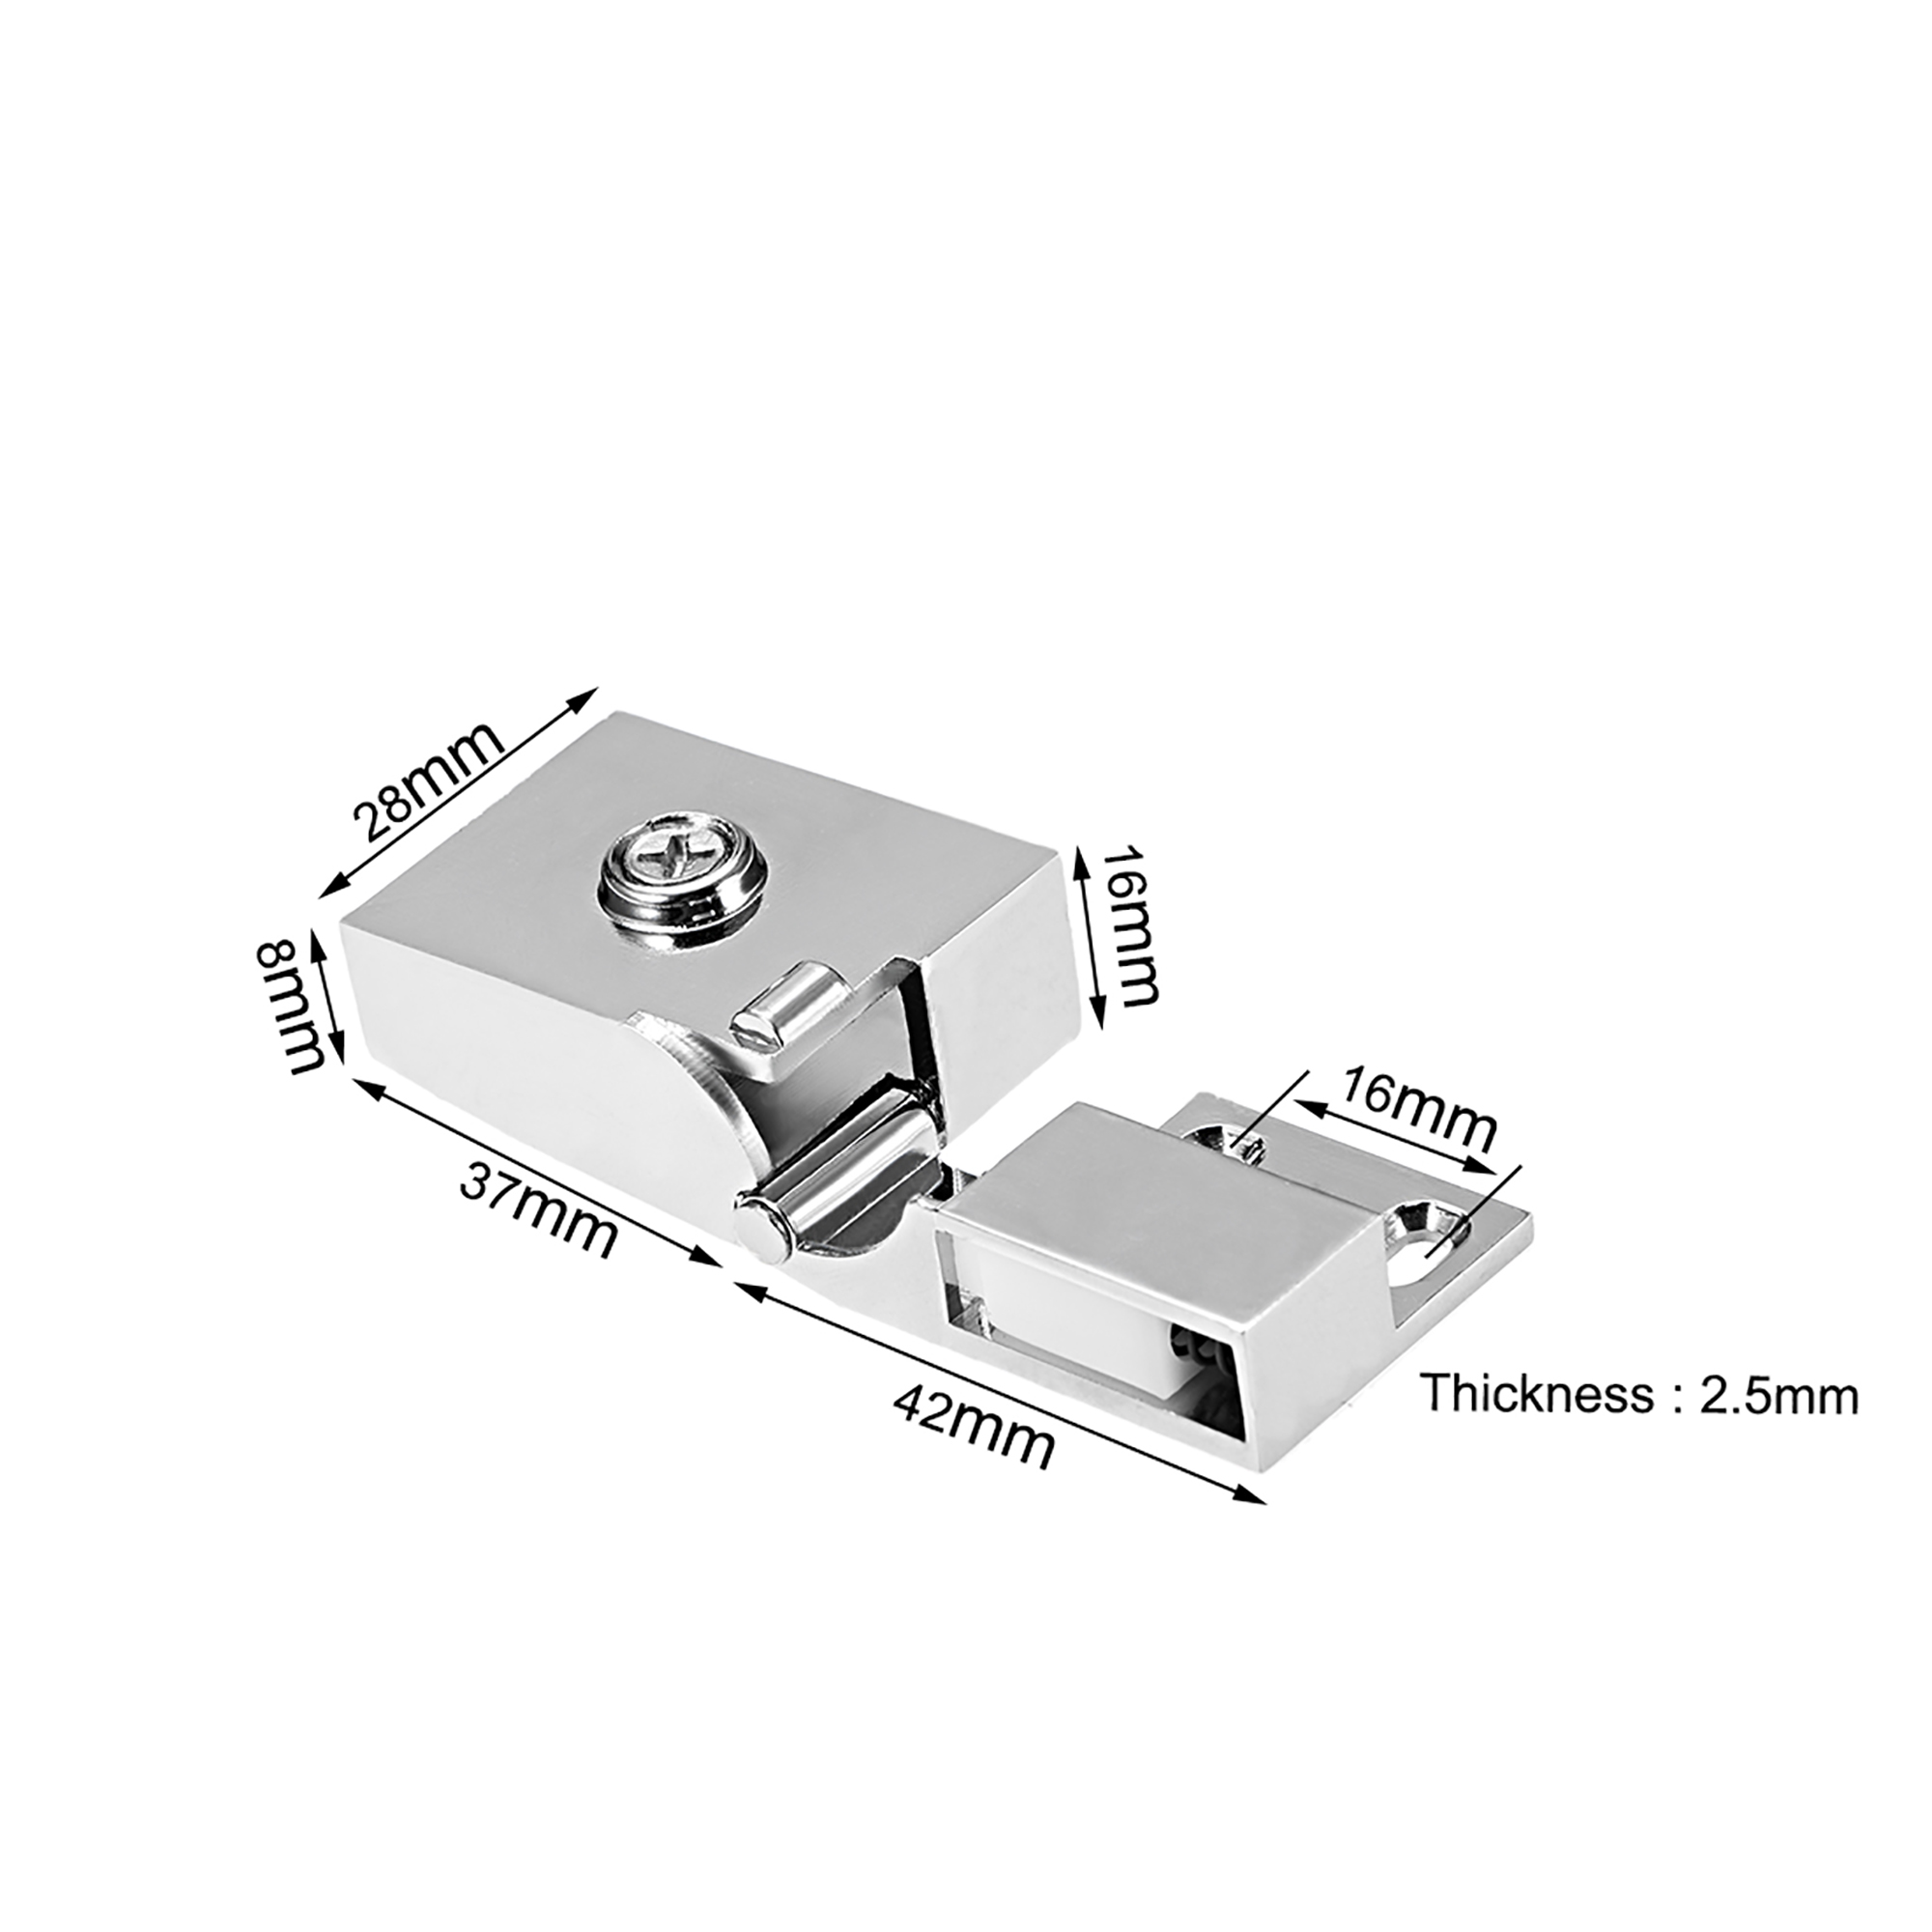 Uxcell 1Pair Glass Door Showcase Cabinet Door Hinge Glass Clamp for3-5mm Thickness - image 3 of 4